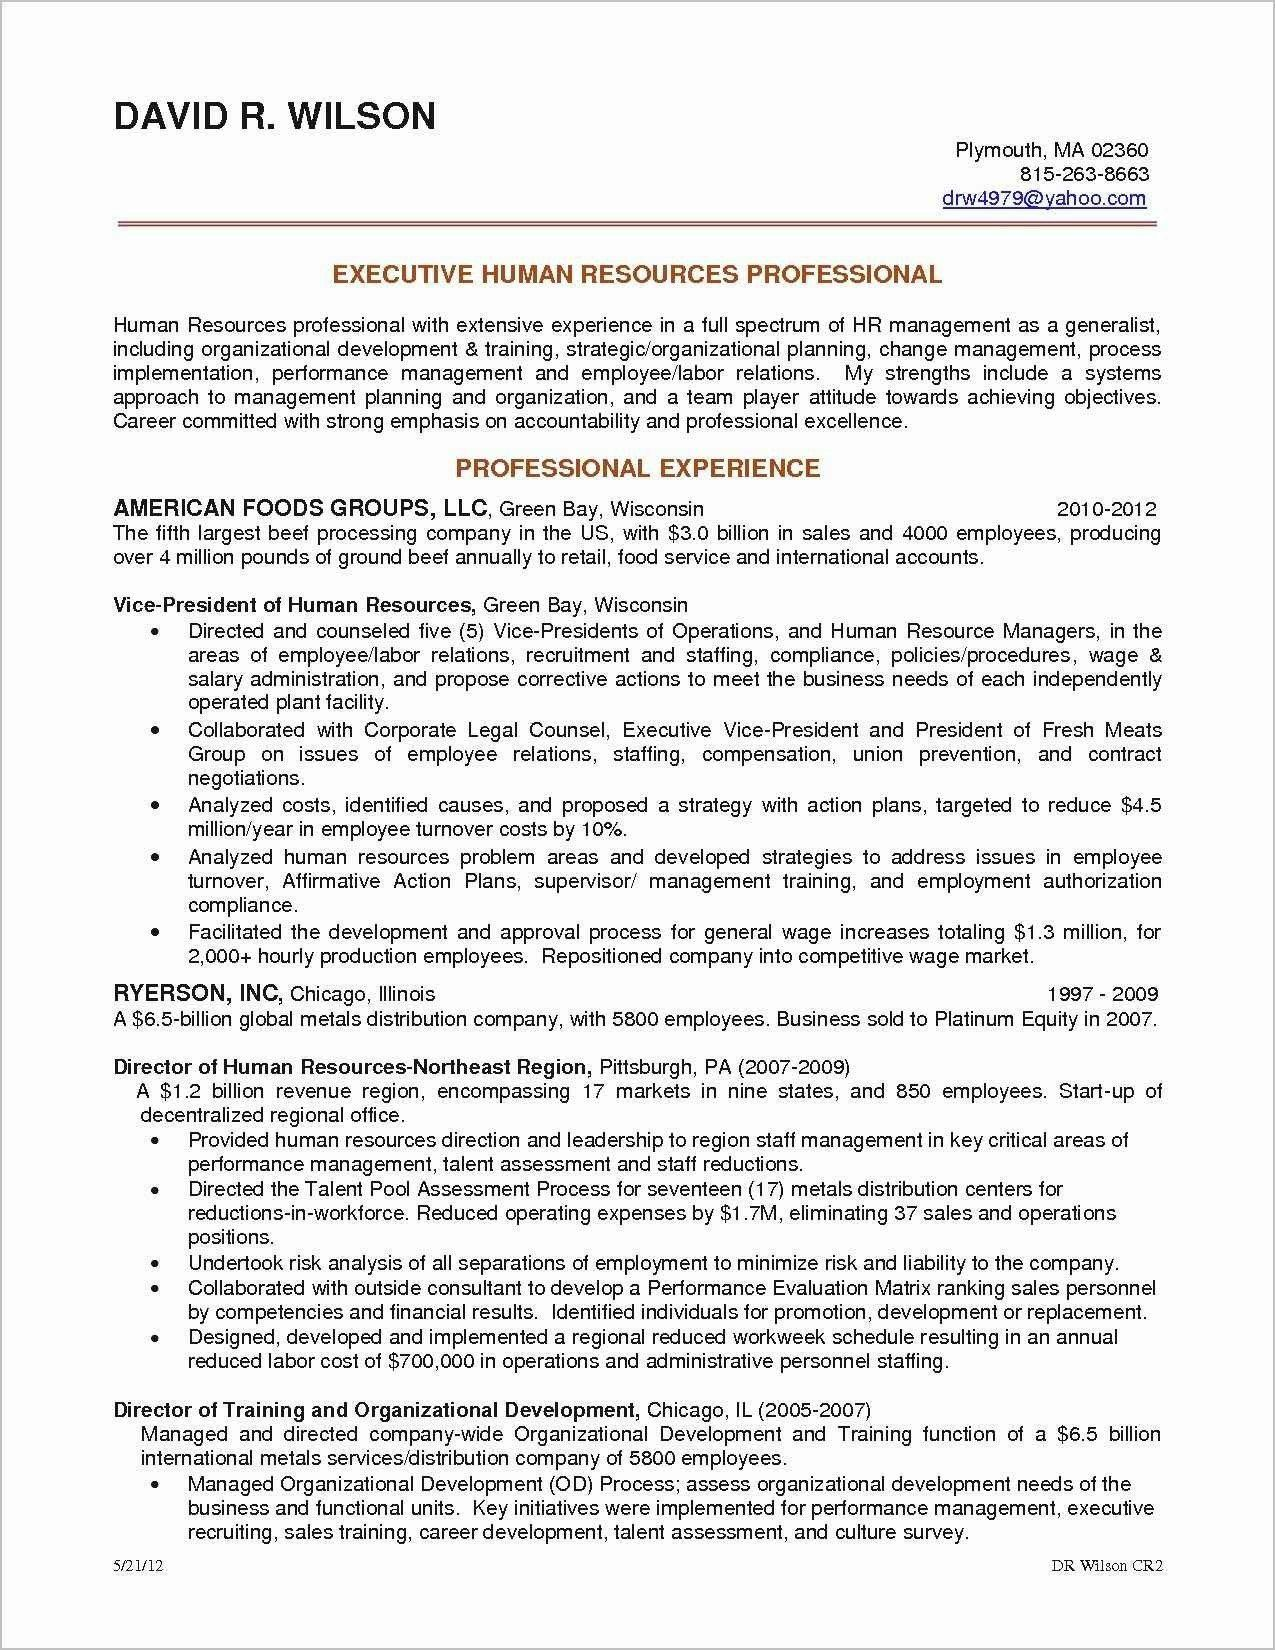 Software Development Manager Resume New Project Manager Resume Examples Business Plan Risk Manajemen Perubahan Template Tips